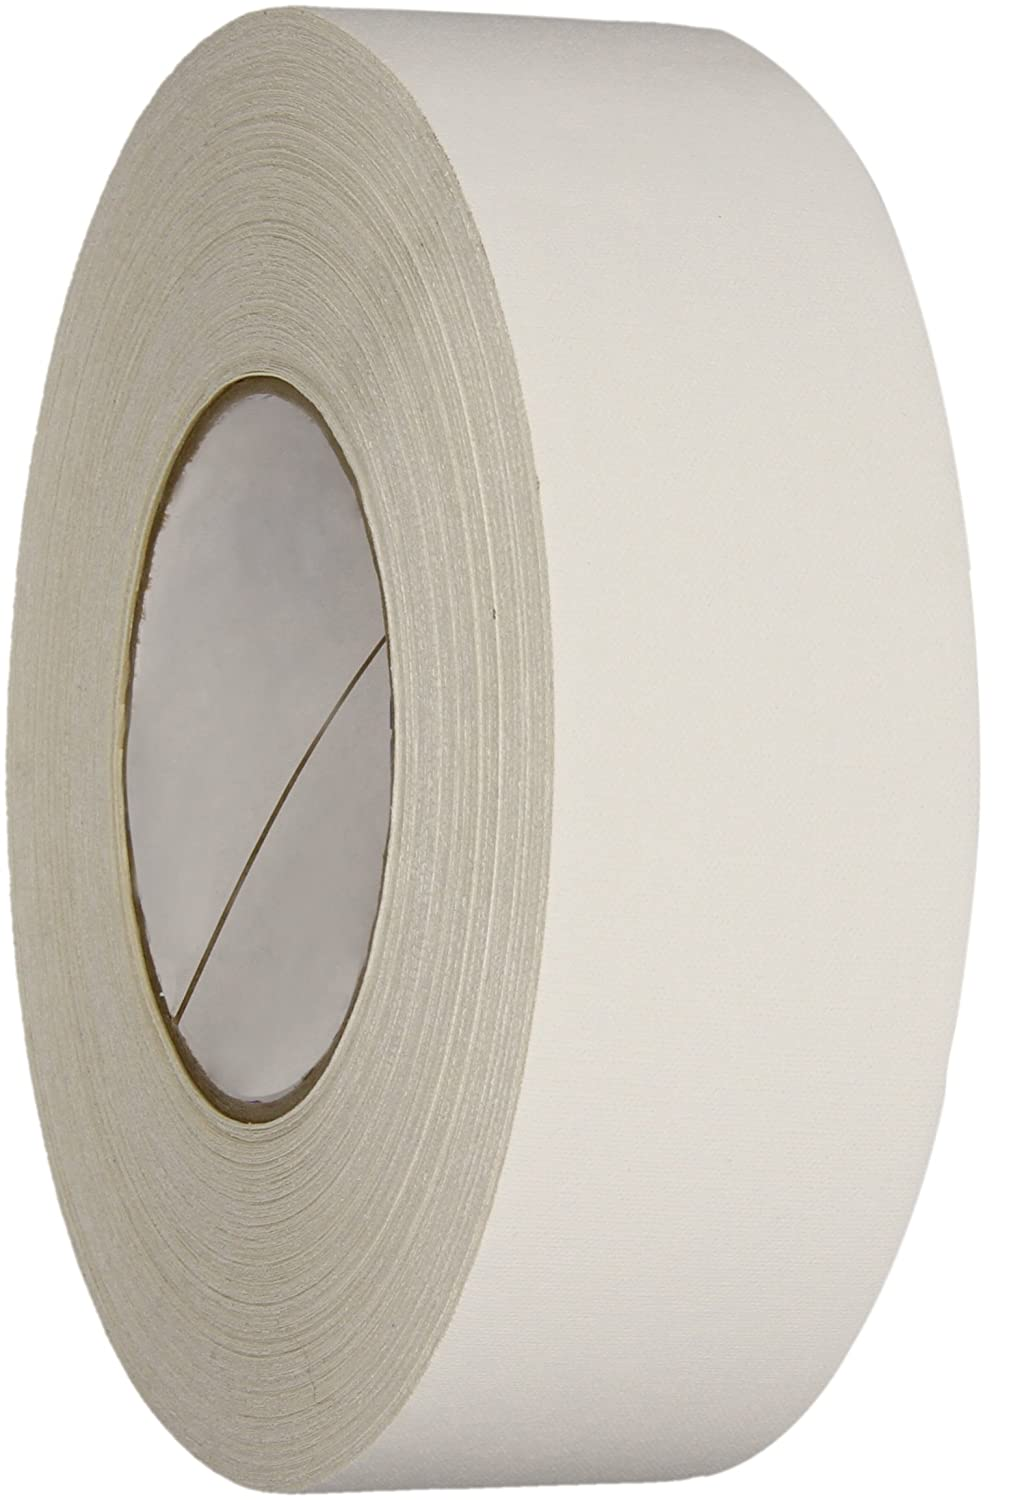 Polyken 510 Vinyl Coated Cloth Premium Gaffer's Tape, 11.5 mil Thick, 50m Length, 48mm Width, White